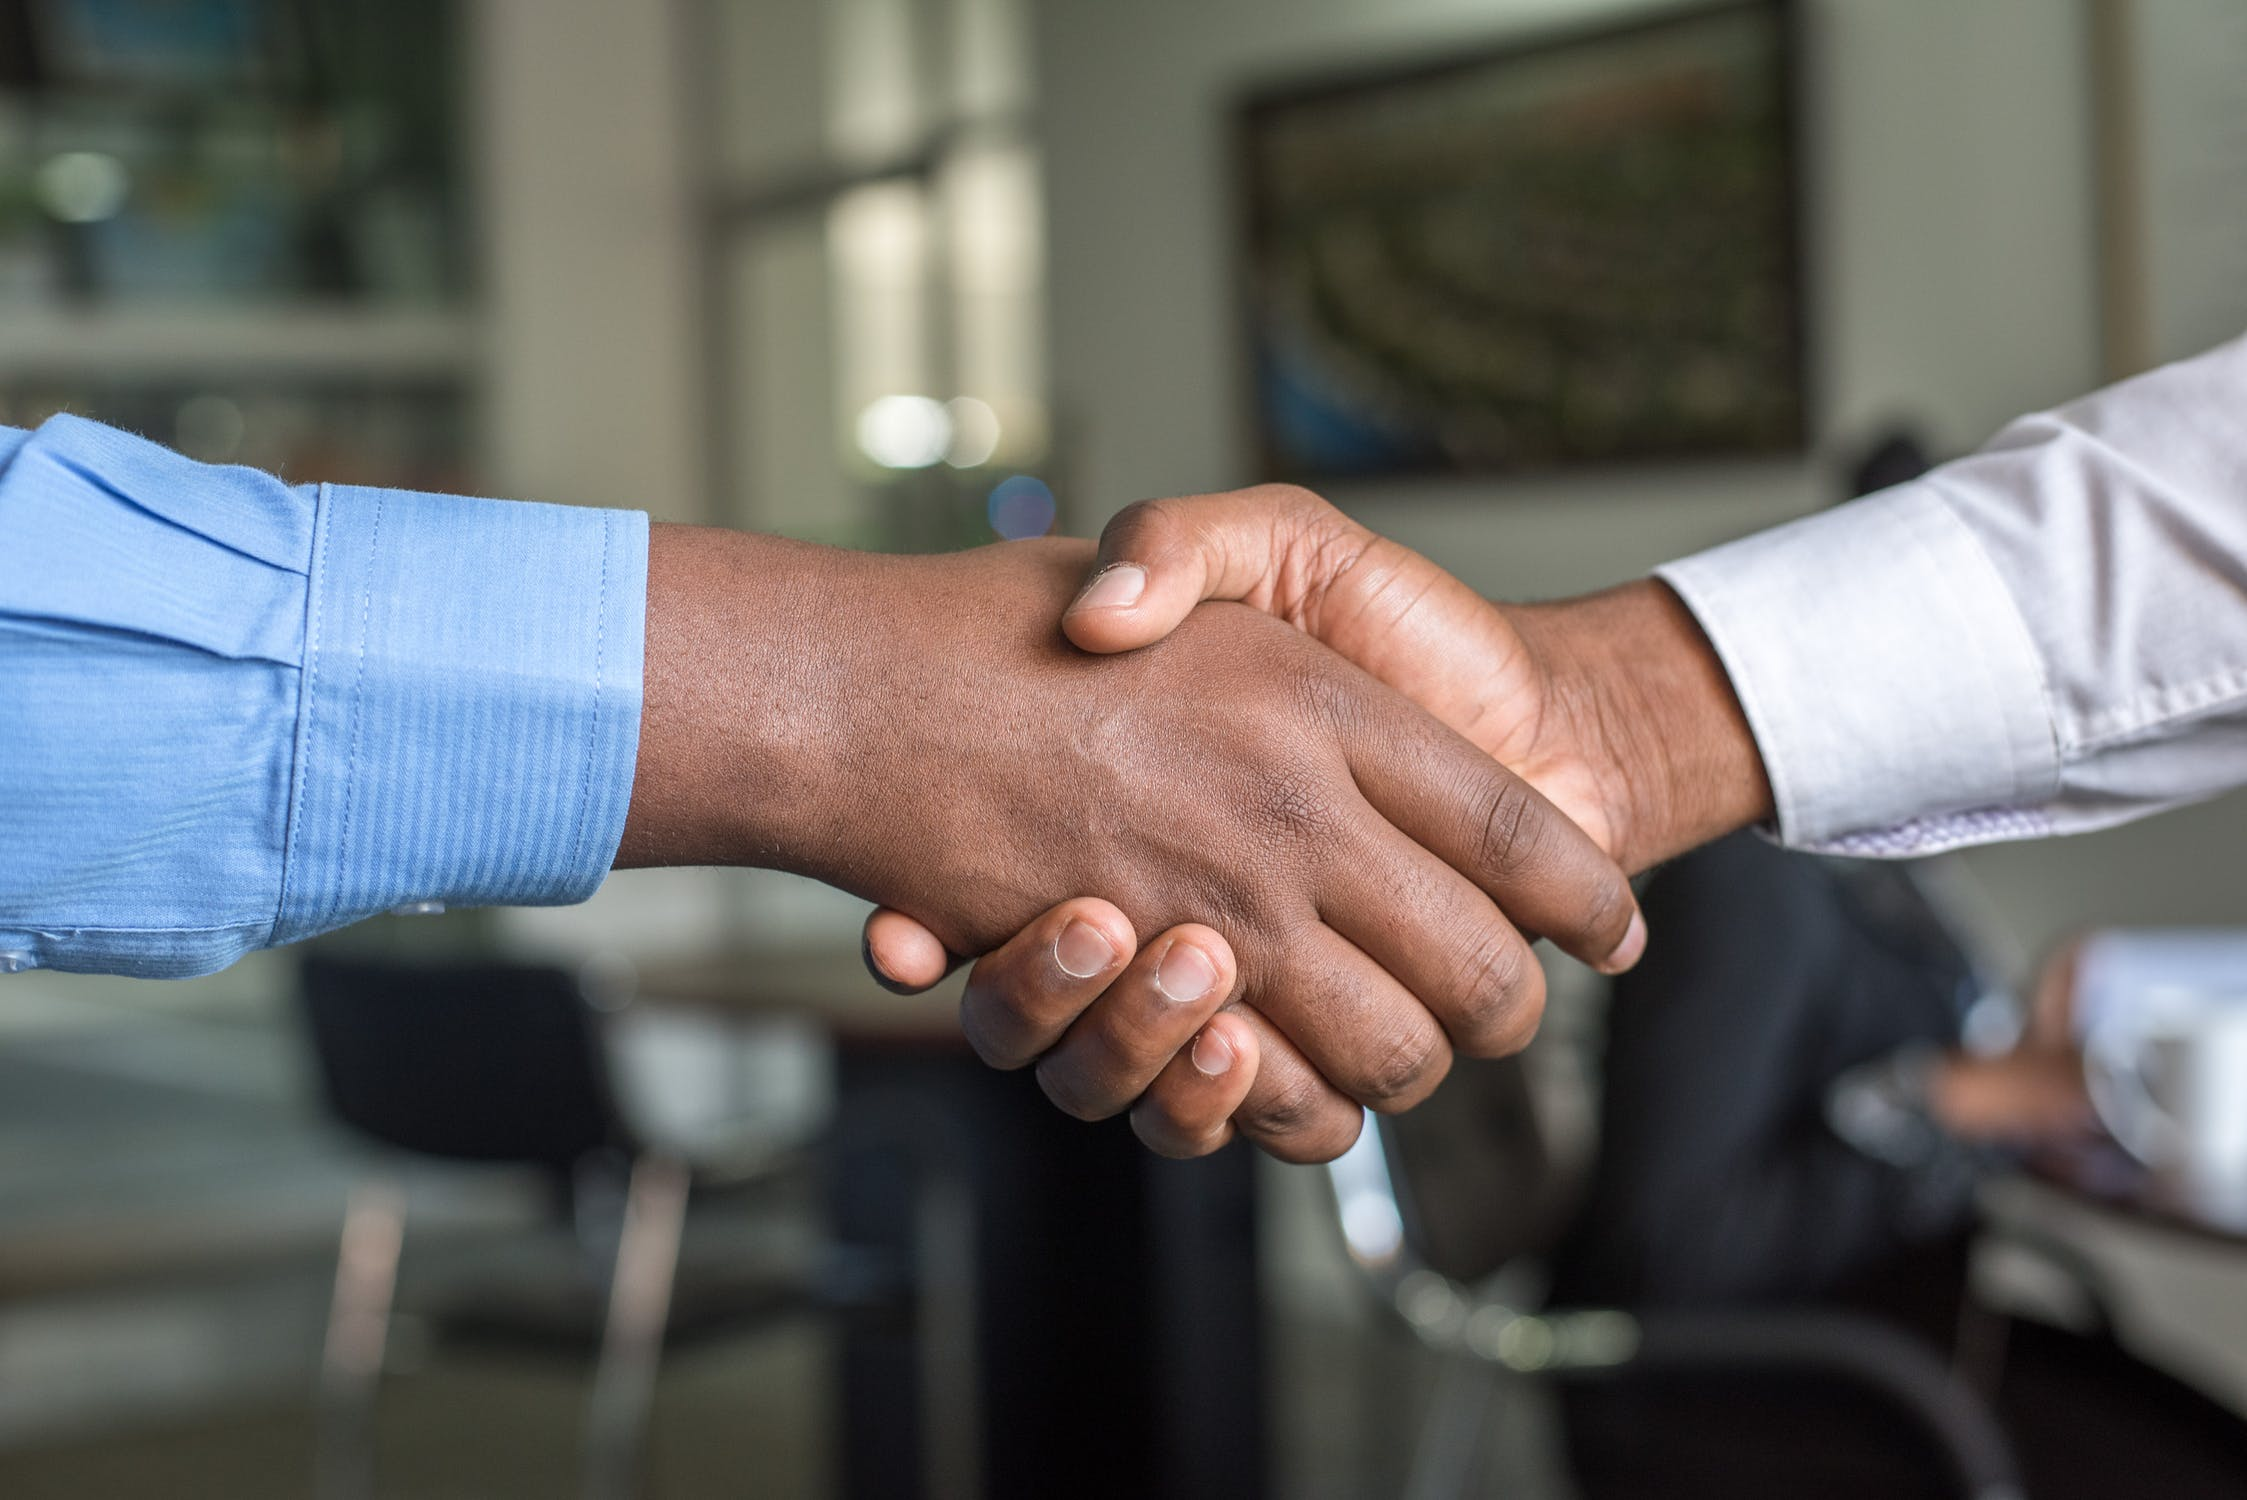 swk technologies is your go-to sage partner